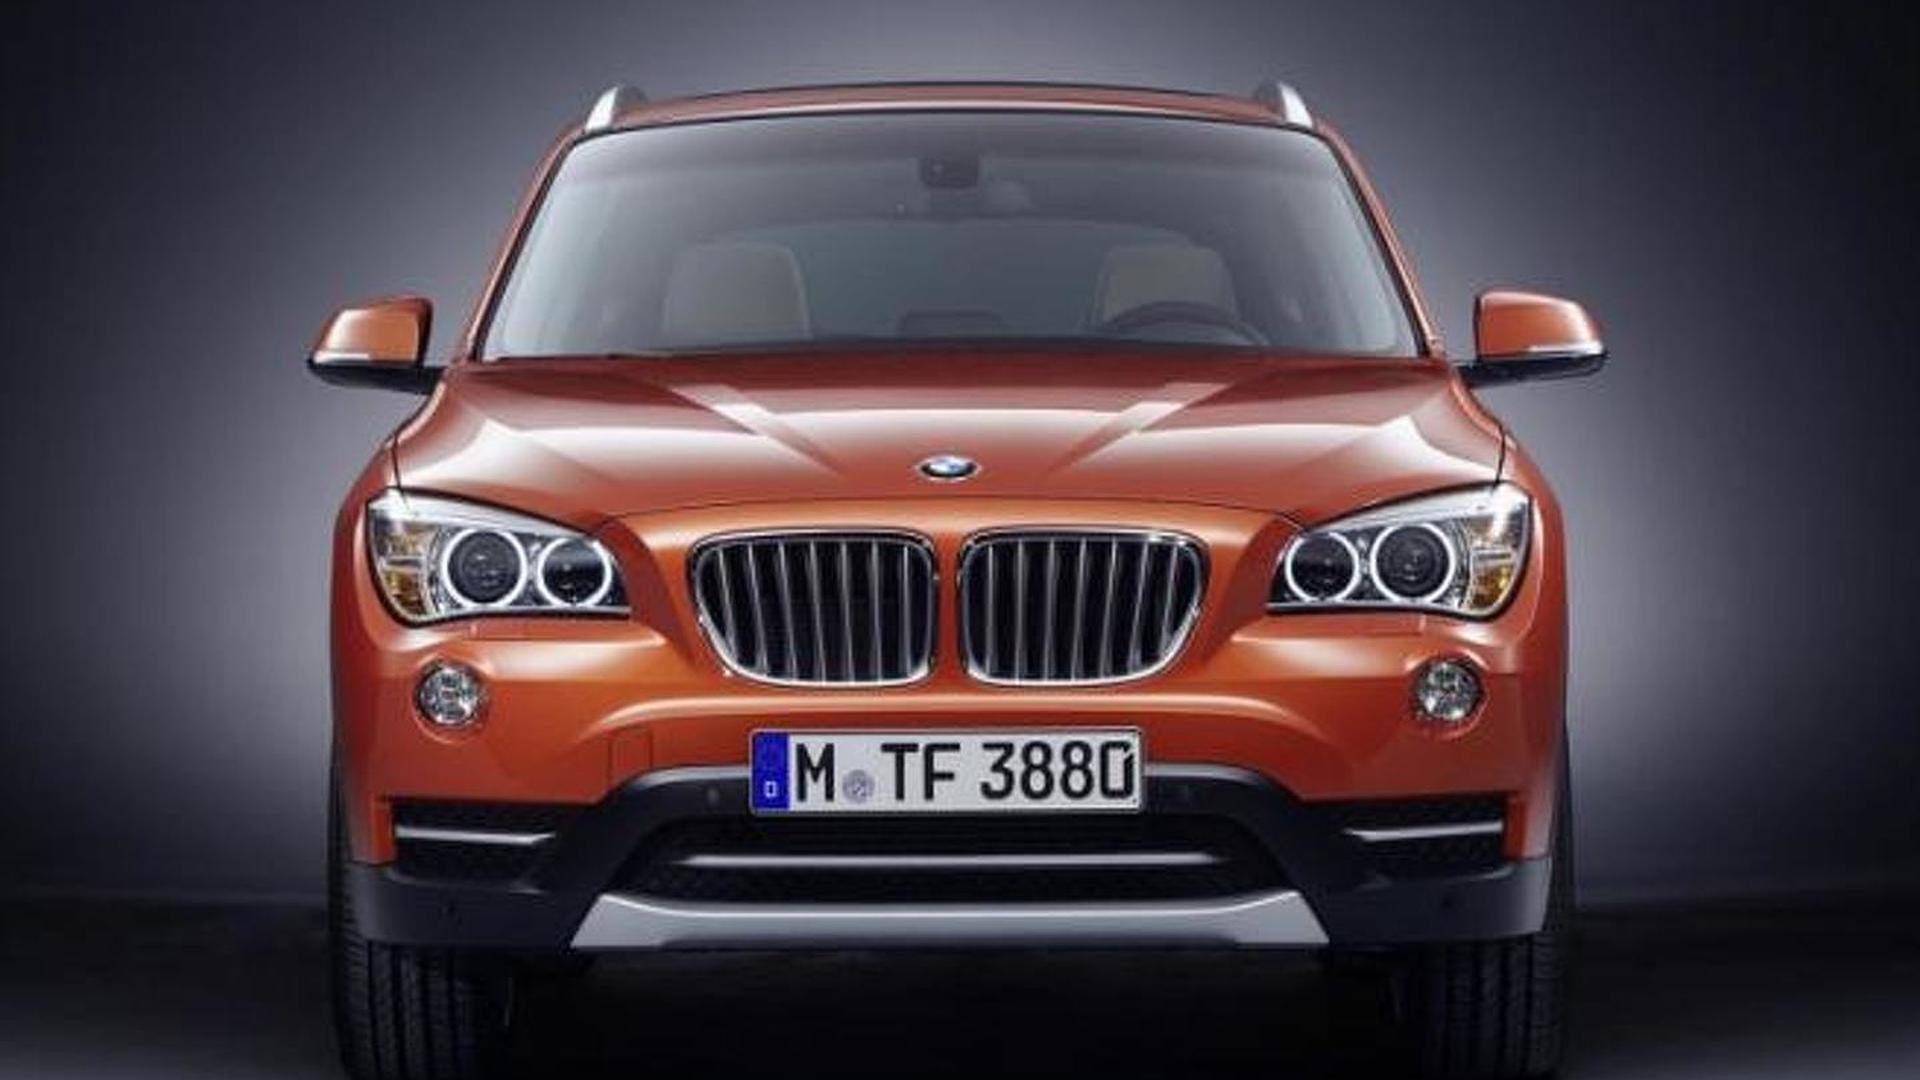 New 2013 BMW X1 facelift leaked